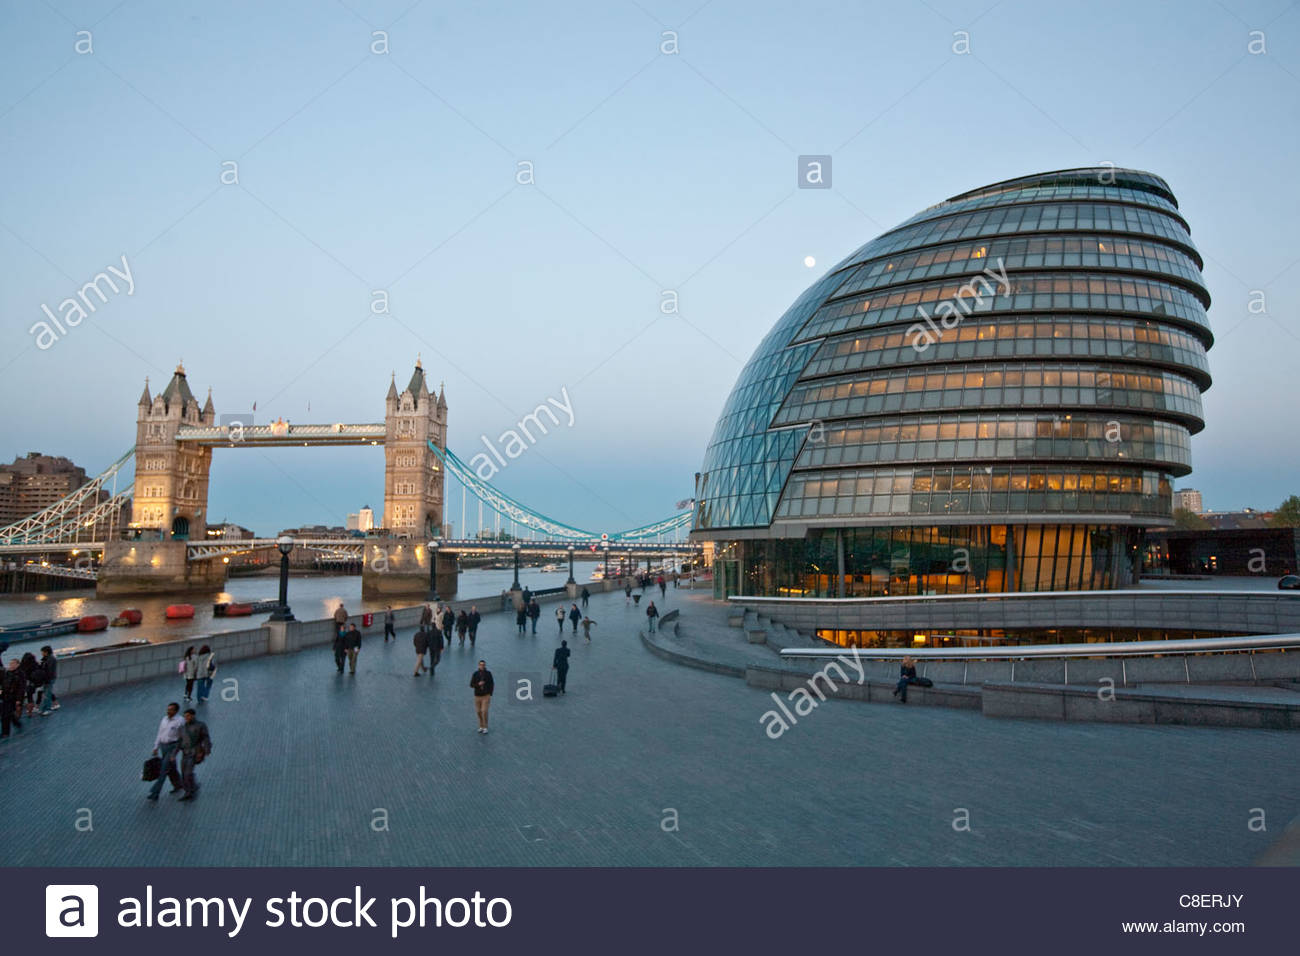 Tower Bridge and London's City Hall building. - Stock Image